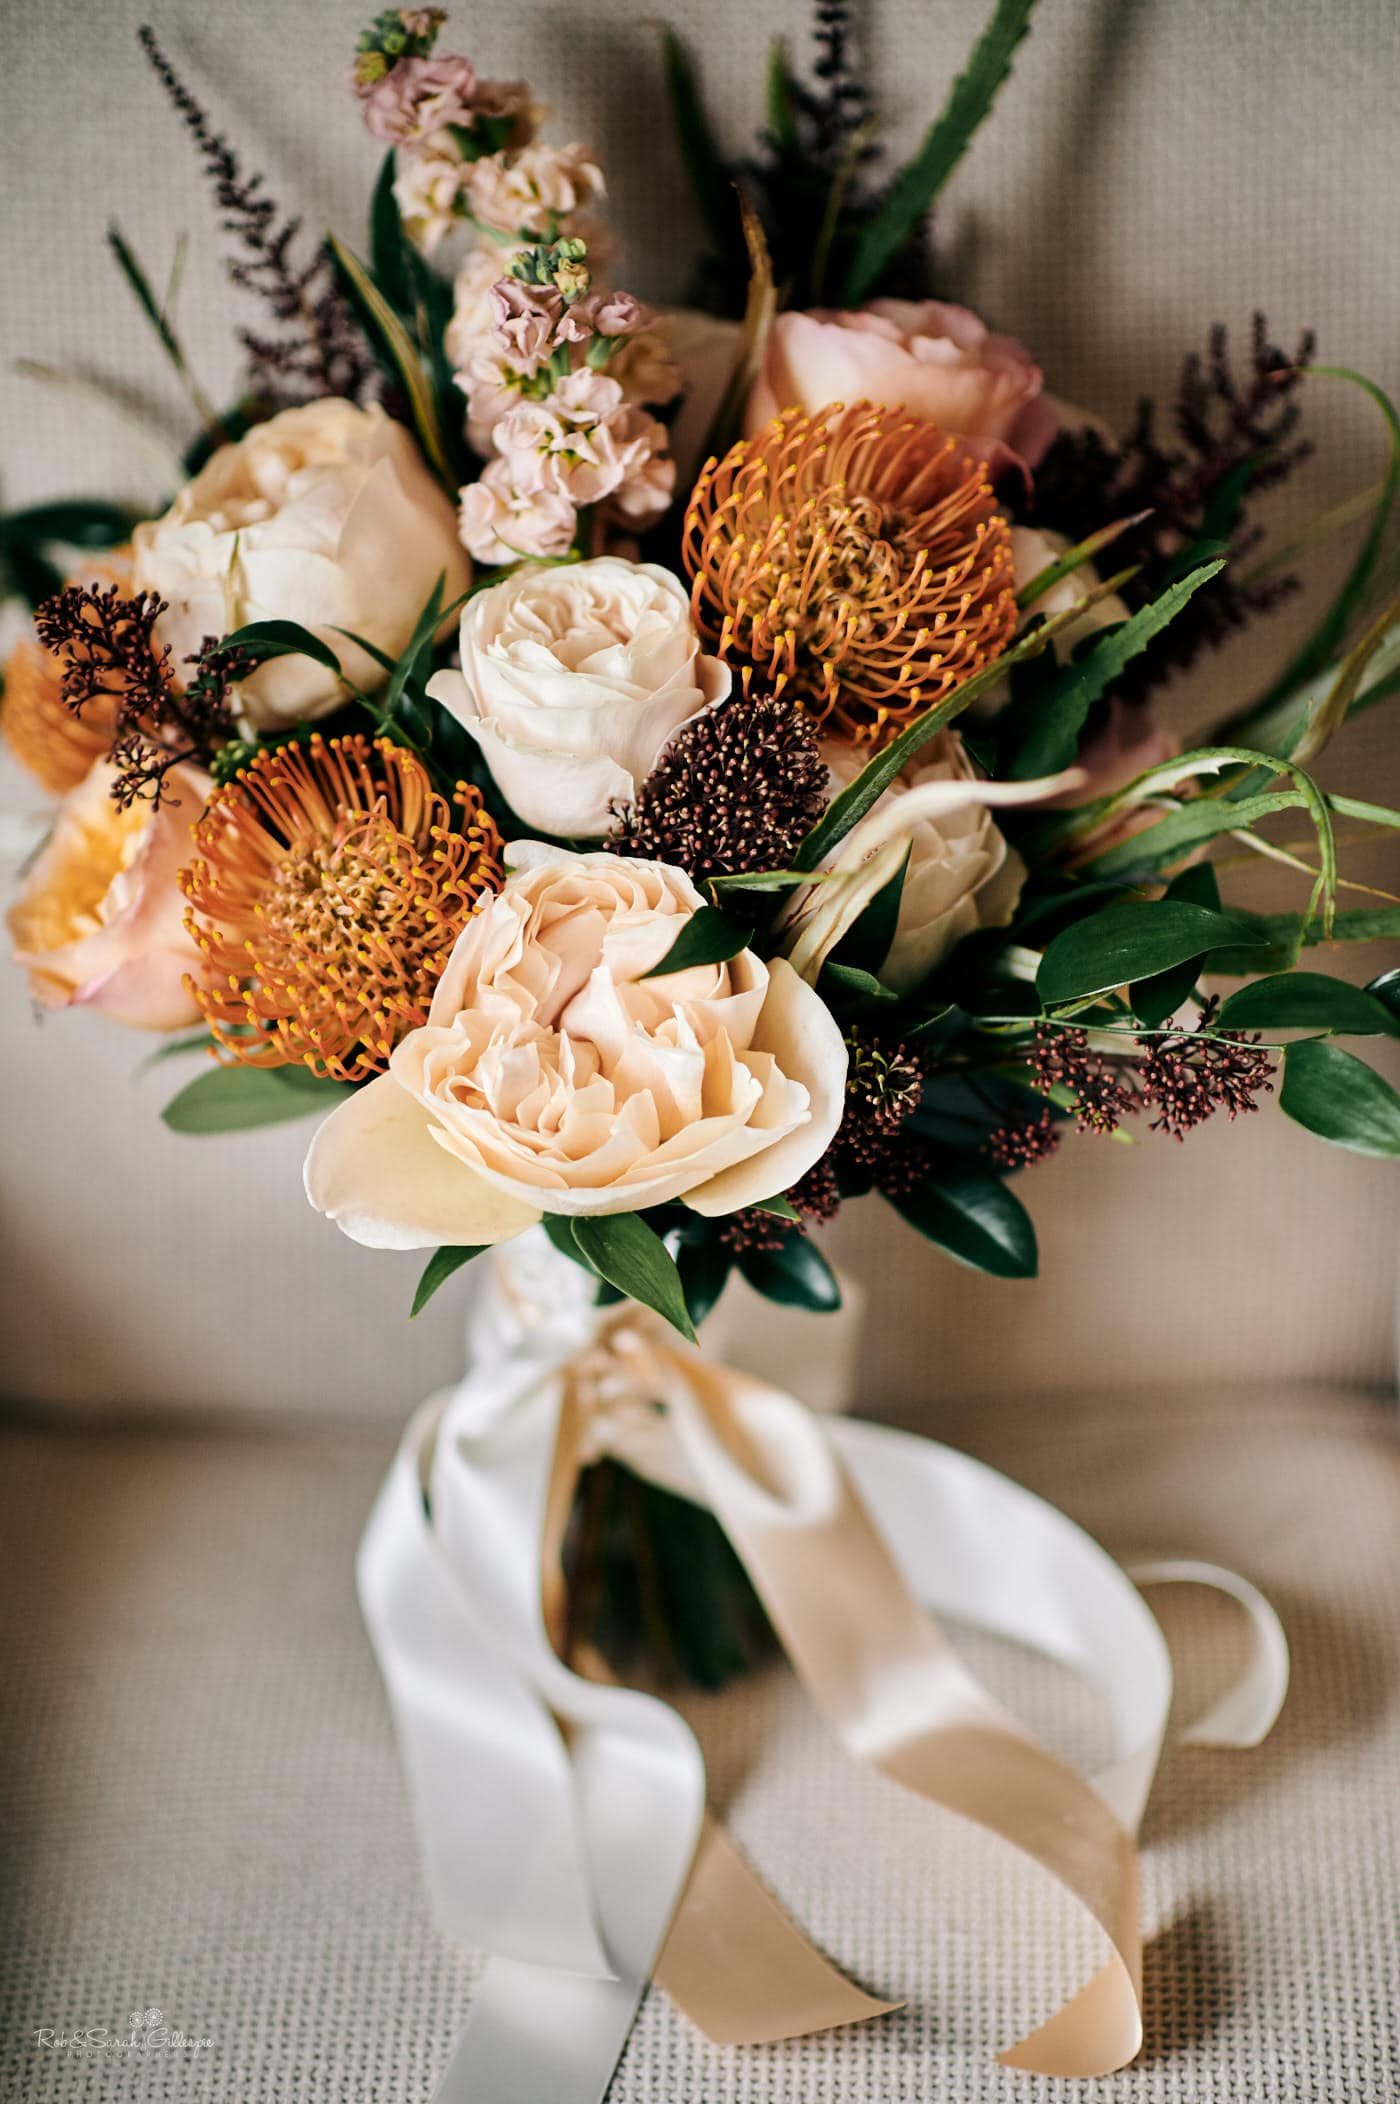 Beautiful bridal bouquet with orange and cream flowers